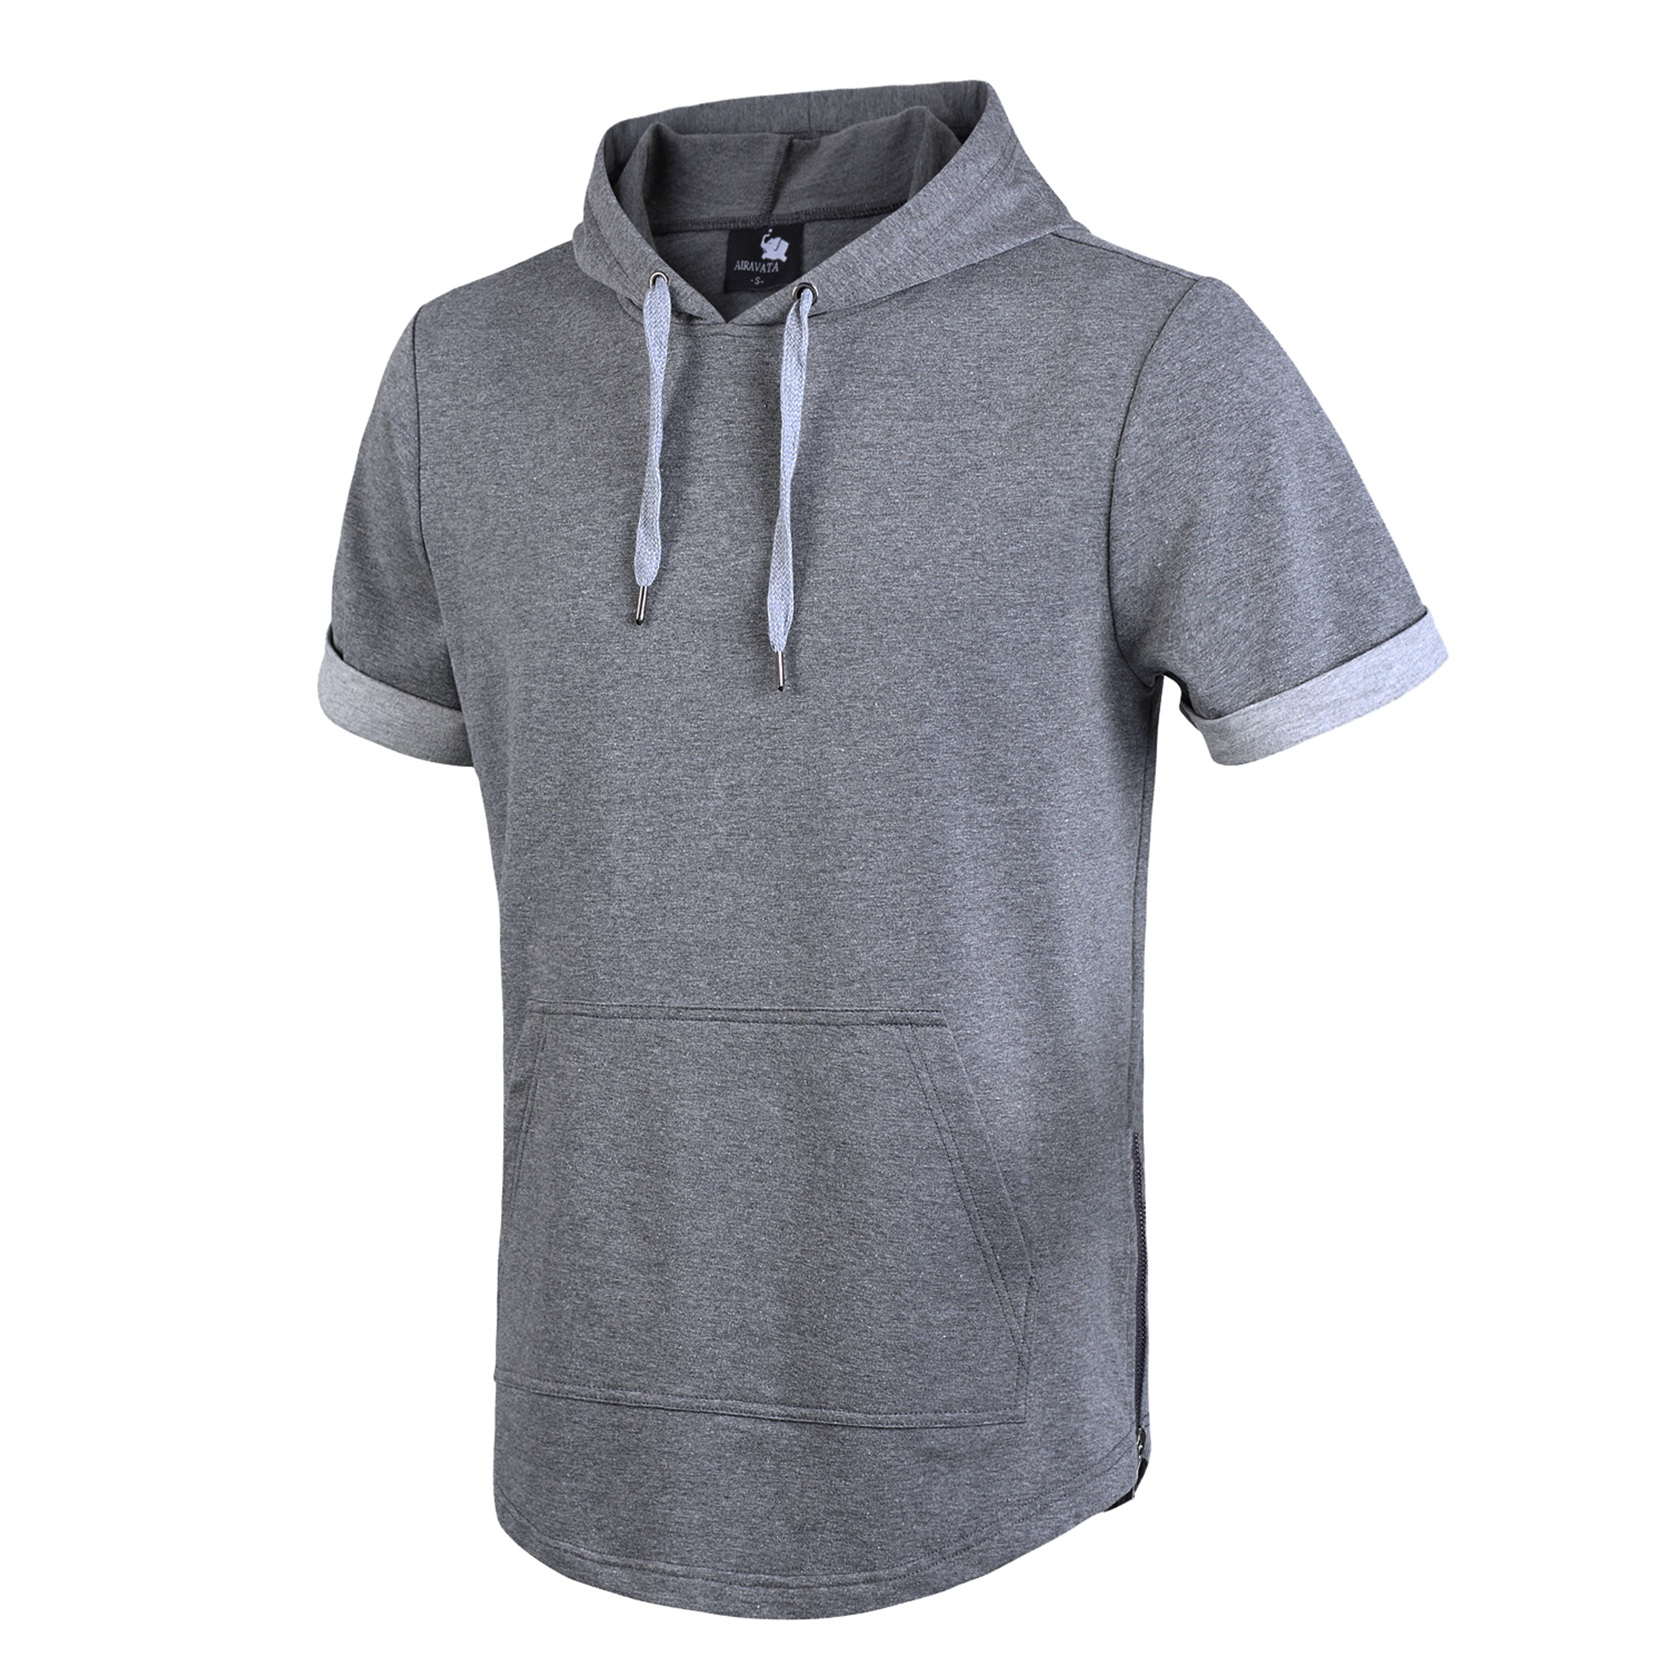 Aliexpress.com : Buy 2017 New Fashion Solid Color Men Cool Hoodies ...